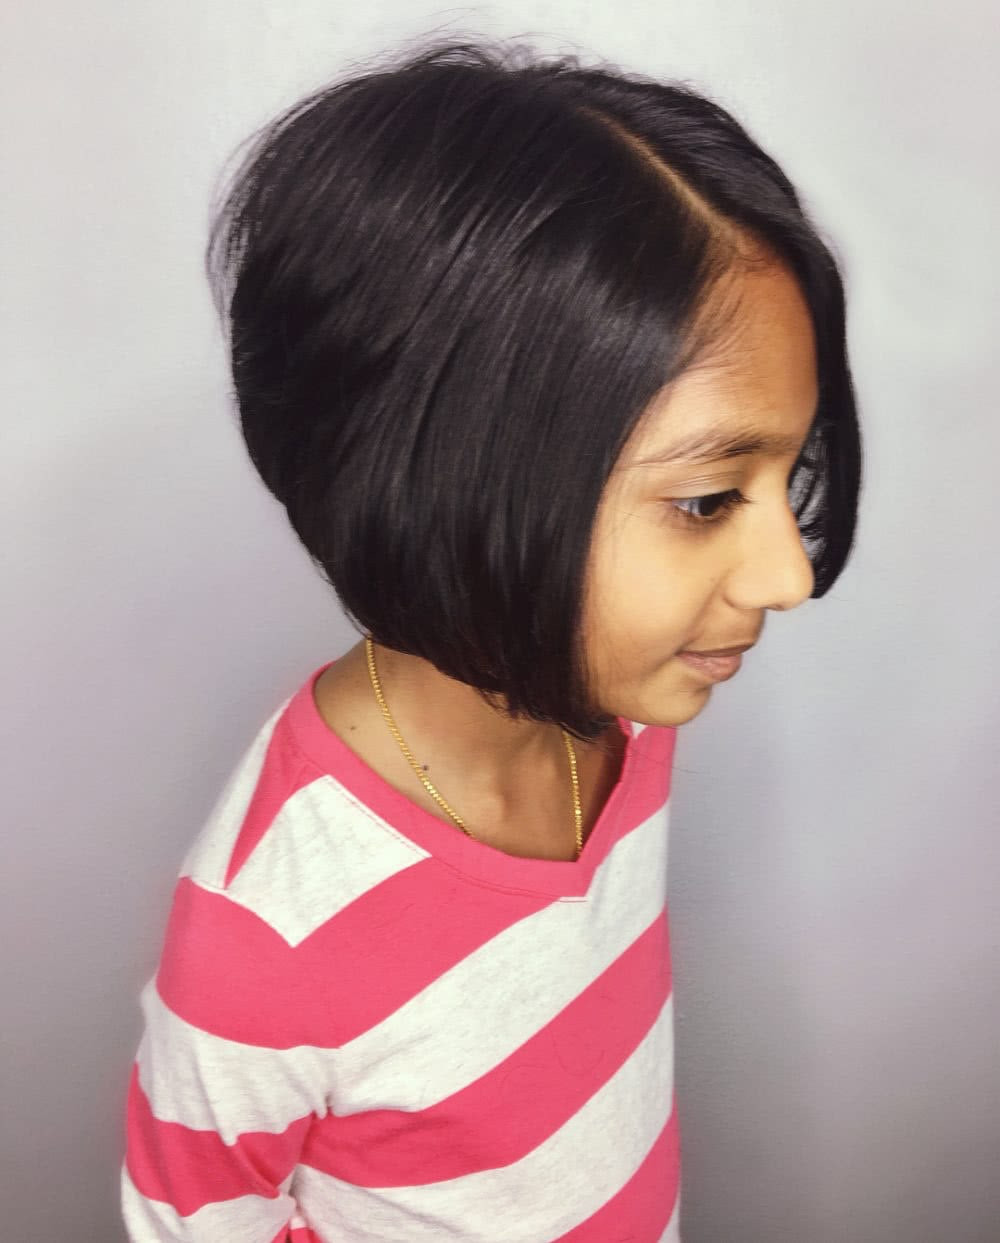 Best ideas about Girls Haircuts . Save or Pin 29 Cutest Little Girl Hairstyles for 2019 Now.